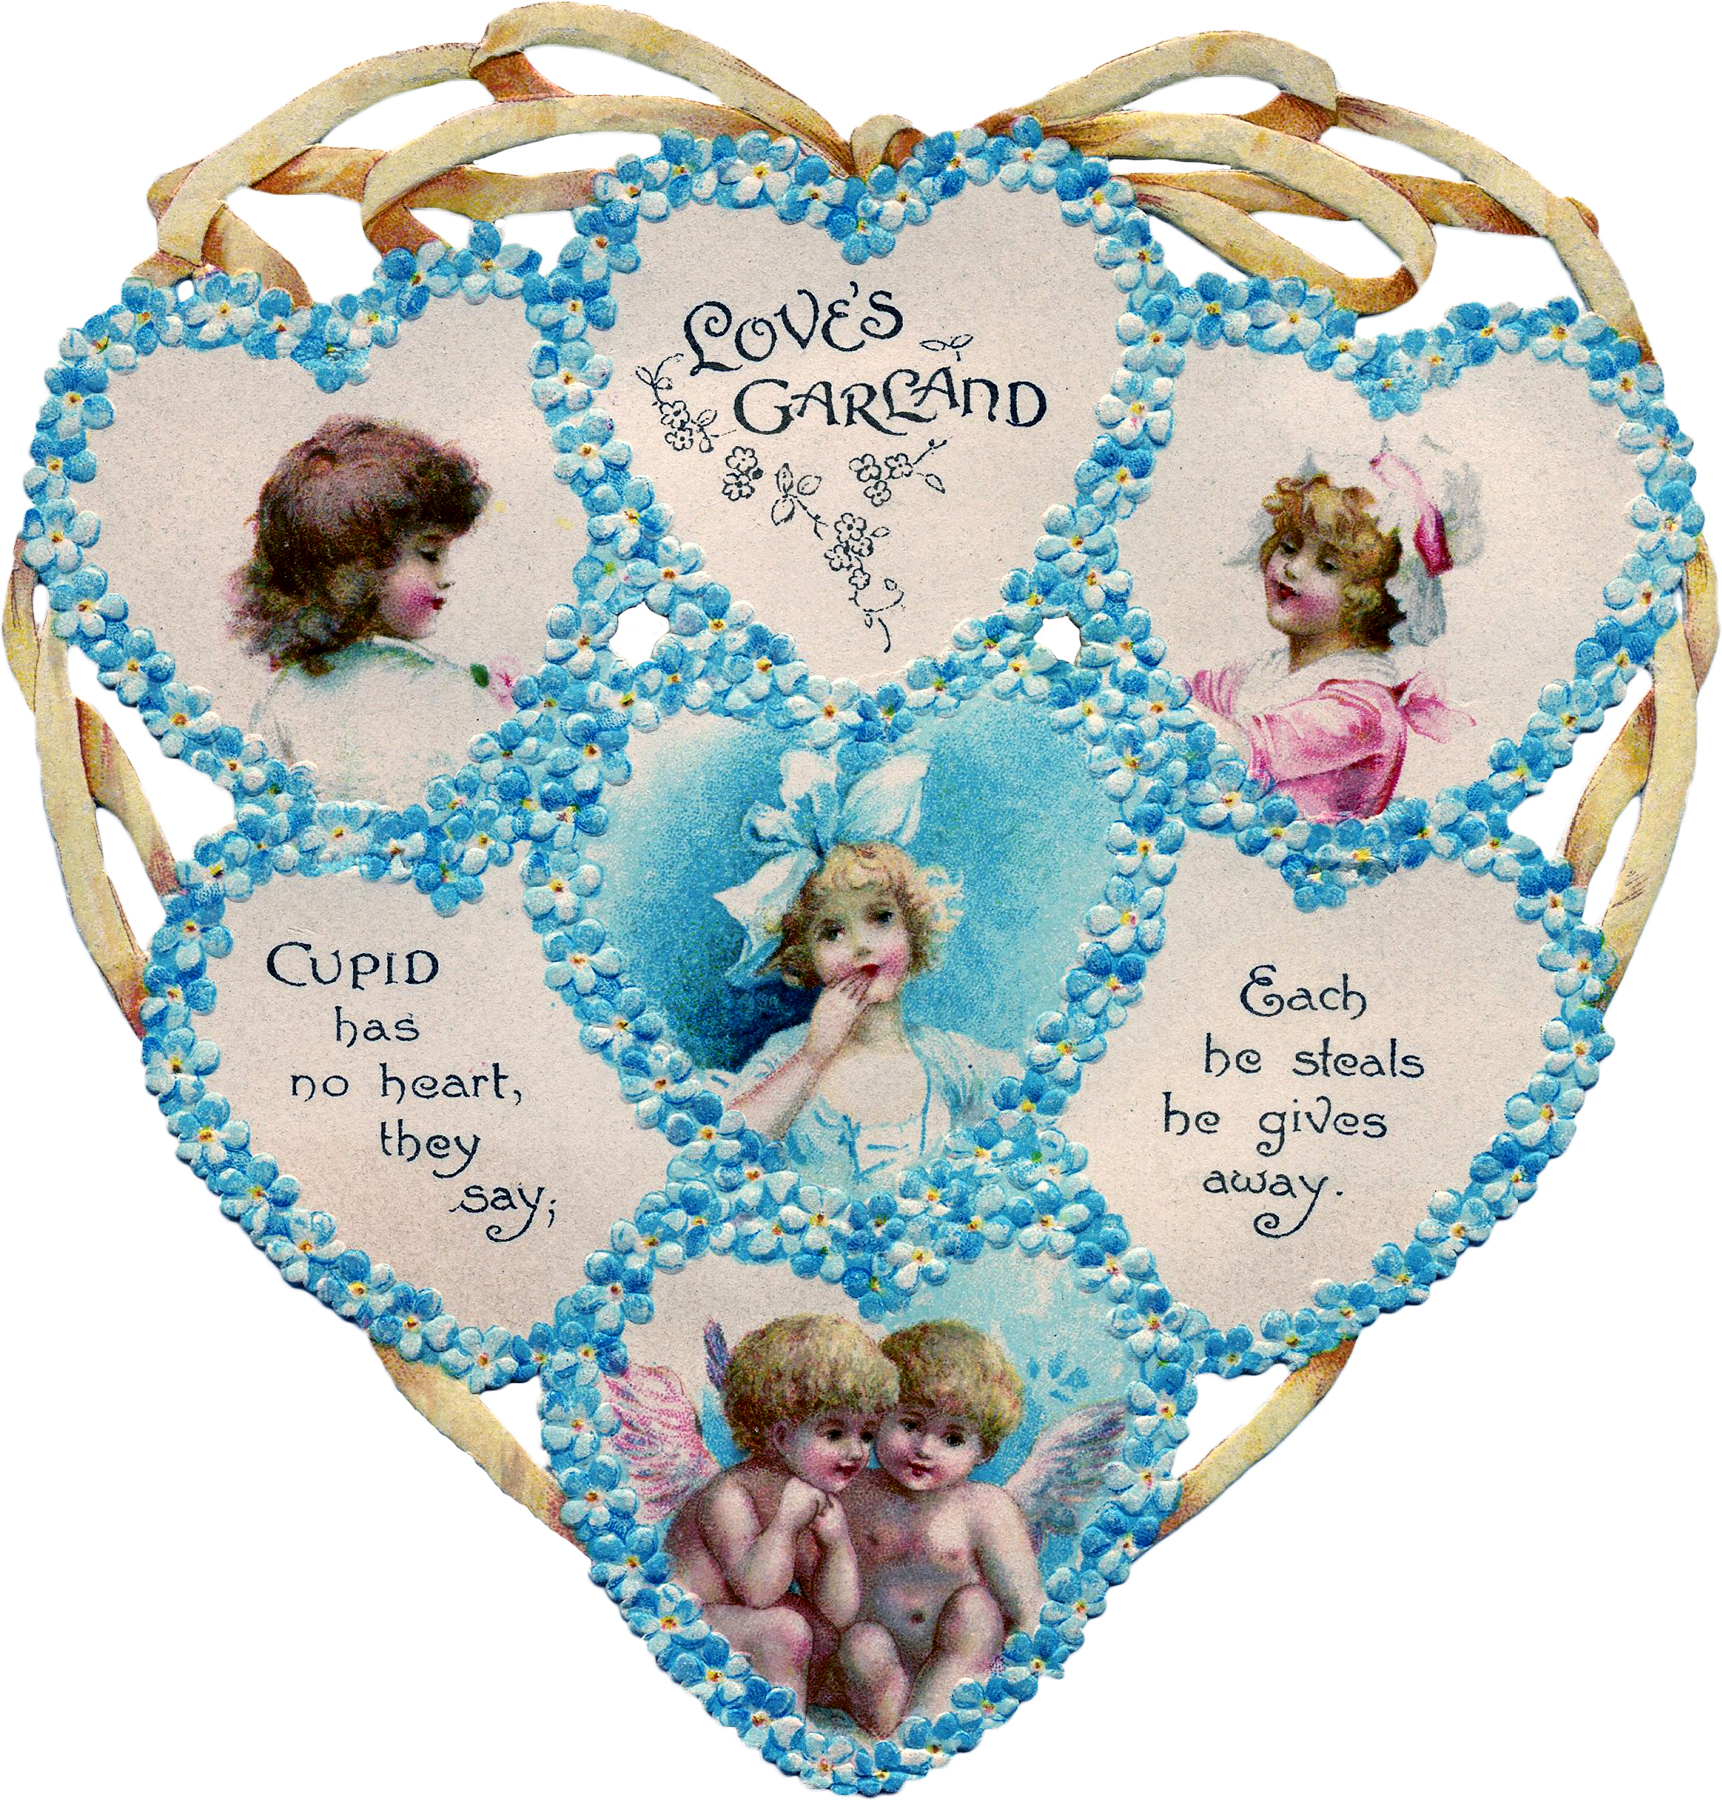 Intricate Victorian Heart Image